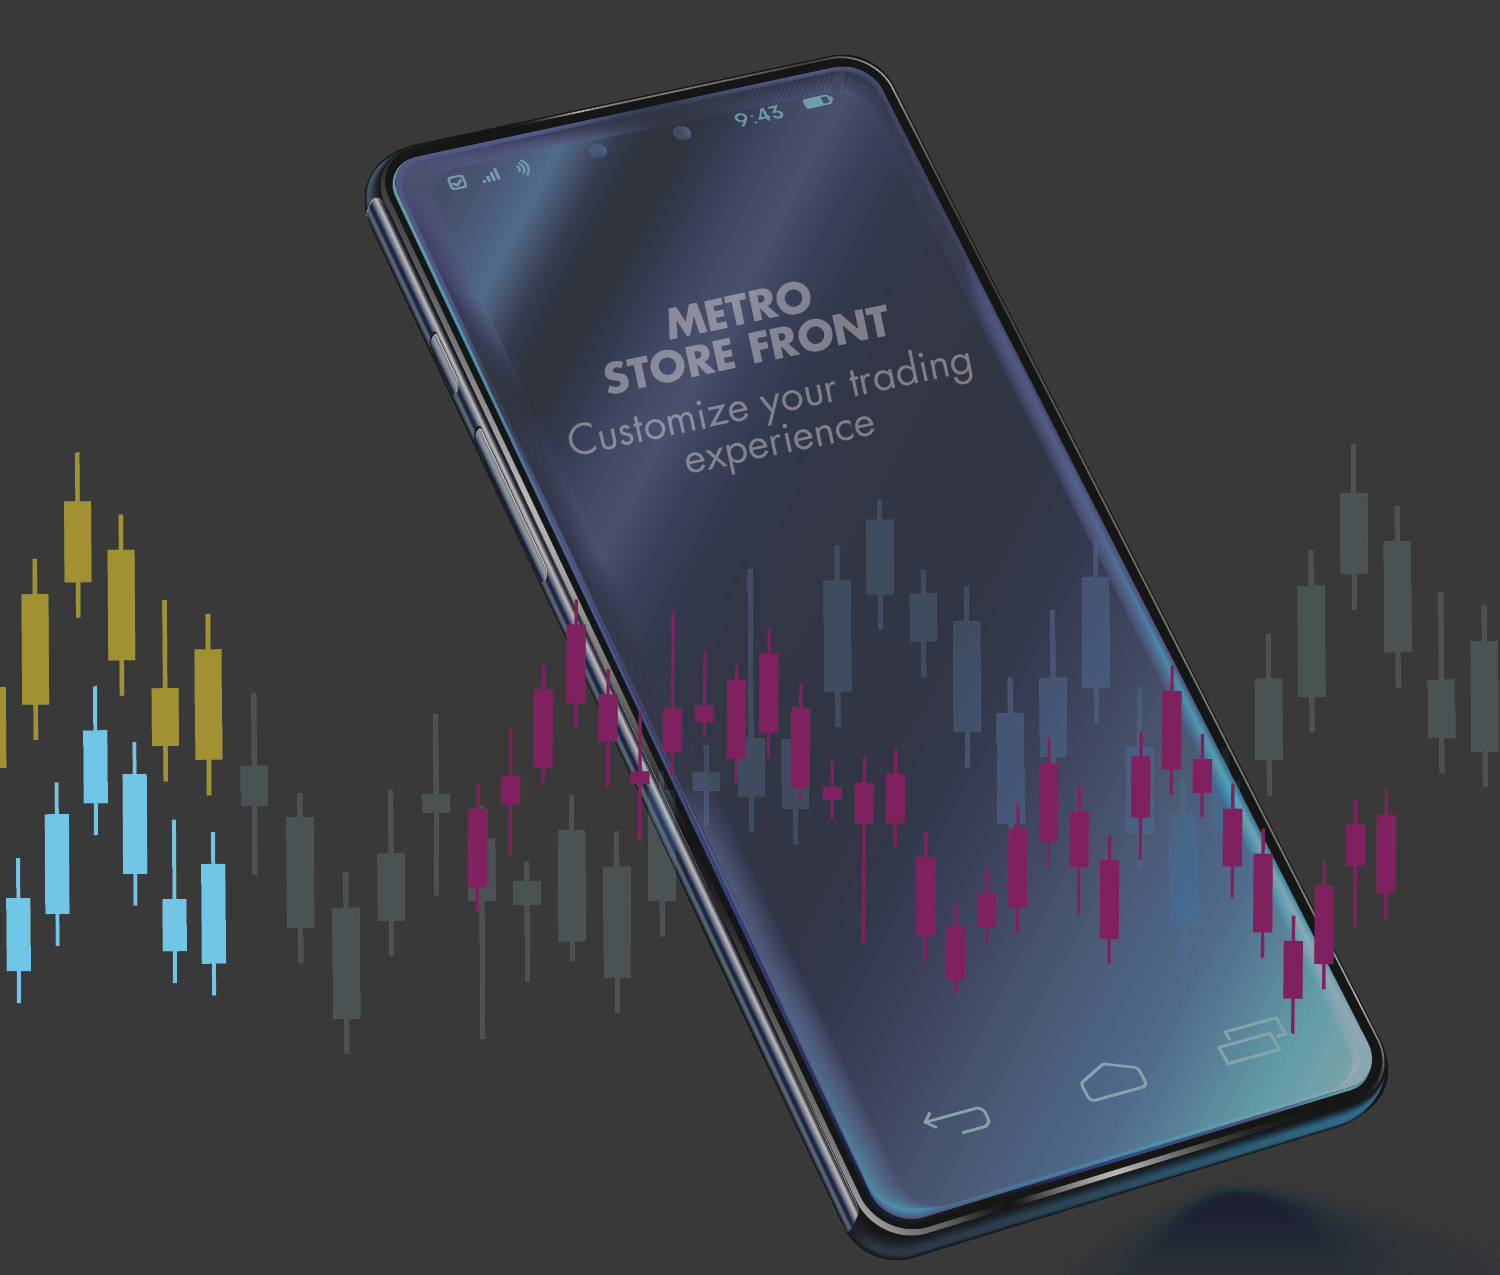 New Volatility Levels app now available via Metro Store Front